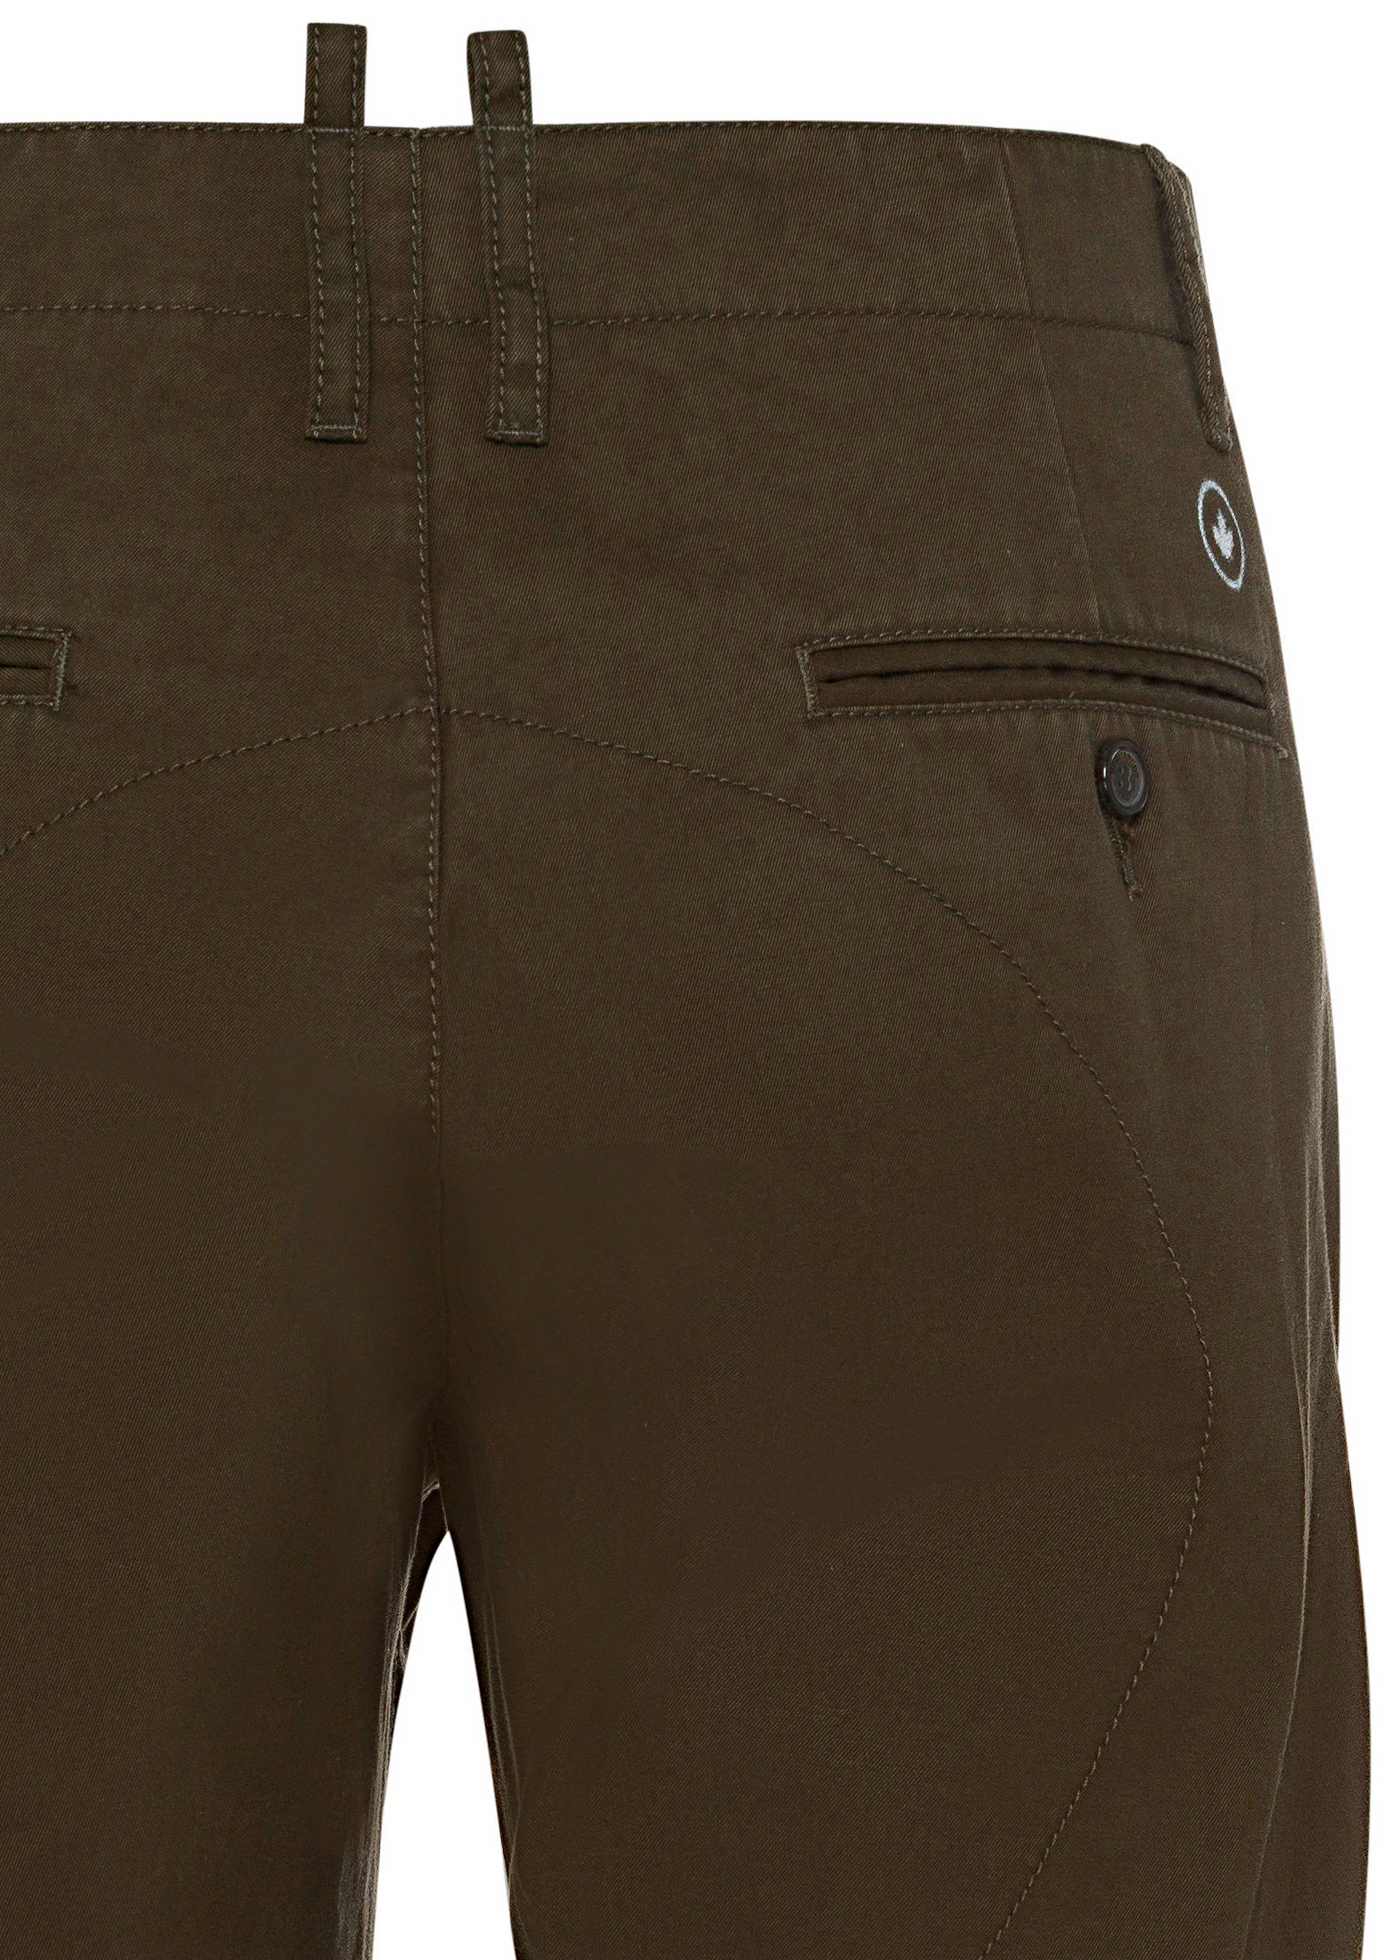 PANTS image number 3